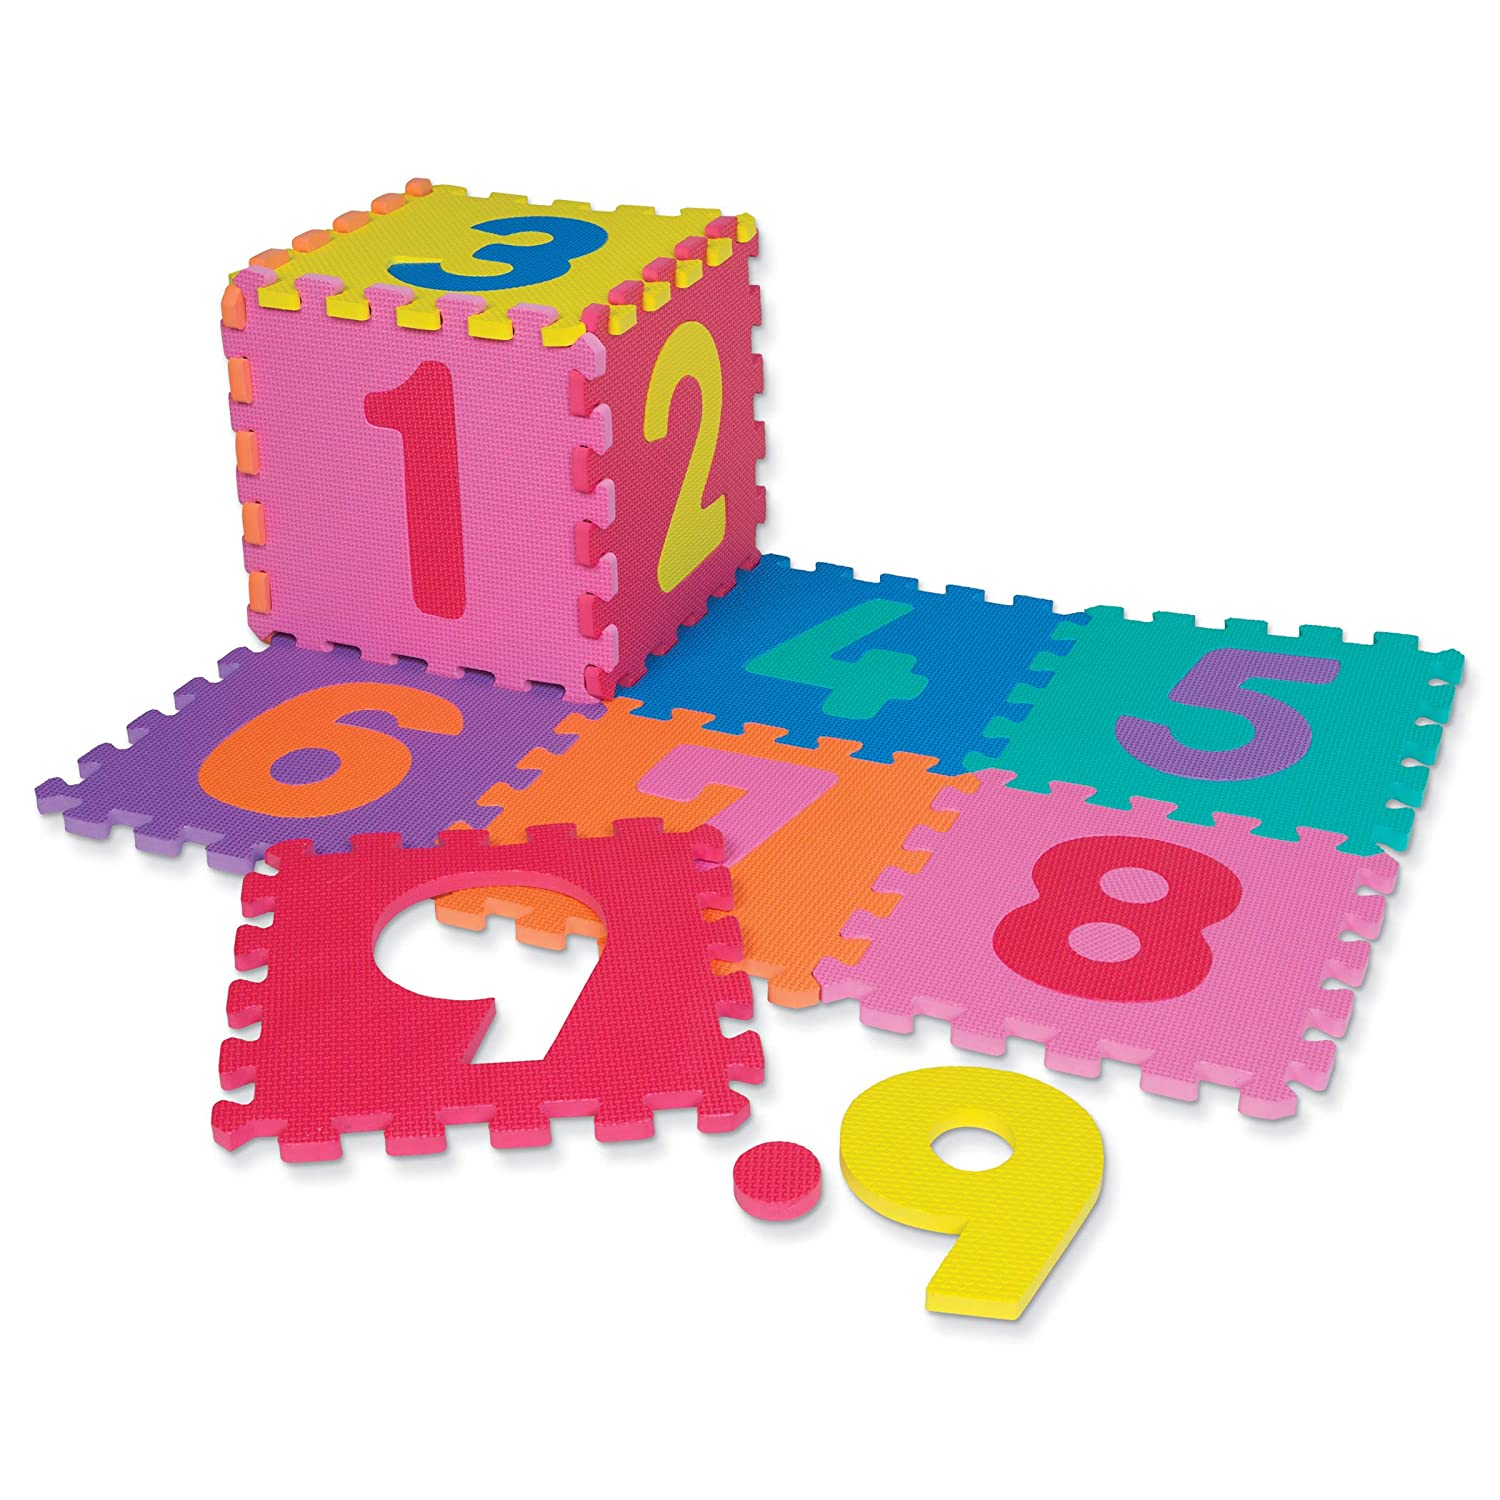 Chenille Kraft WonderFoam CK 4382 Numbers Puzzle Mat Assorted Colors 10 x 10 20 Pieces 10 Squares